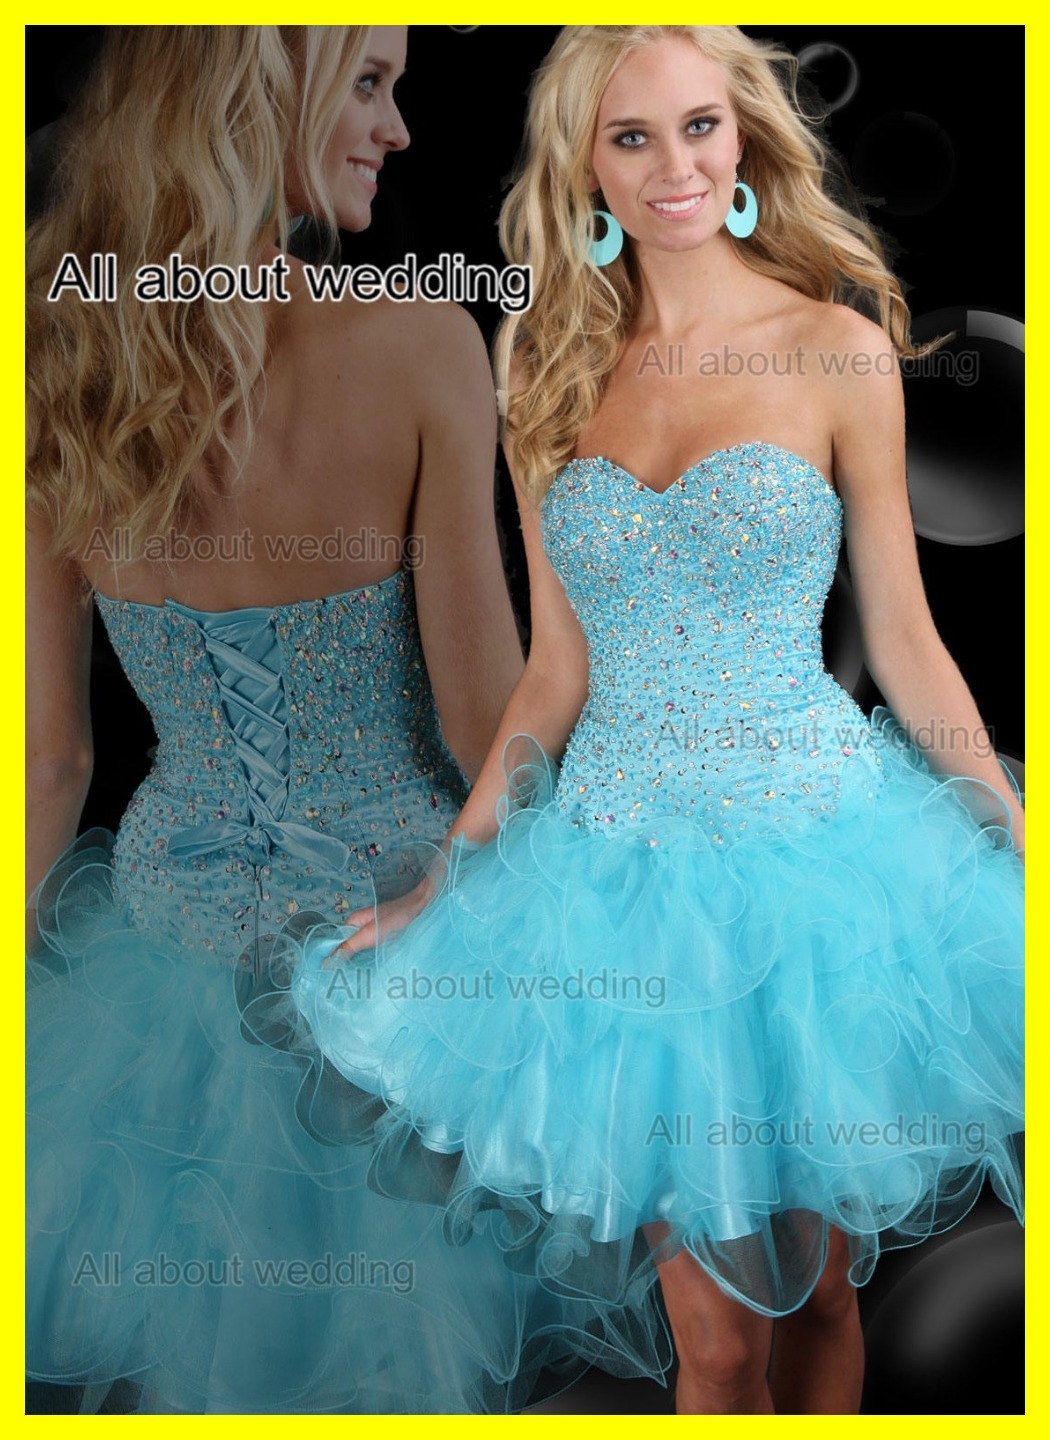 Prom Dresses For Tall Girls Wedding High School Short Pink Big Ball ...